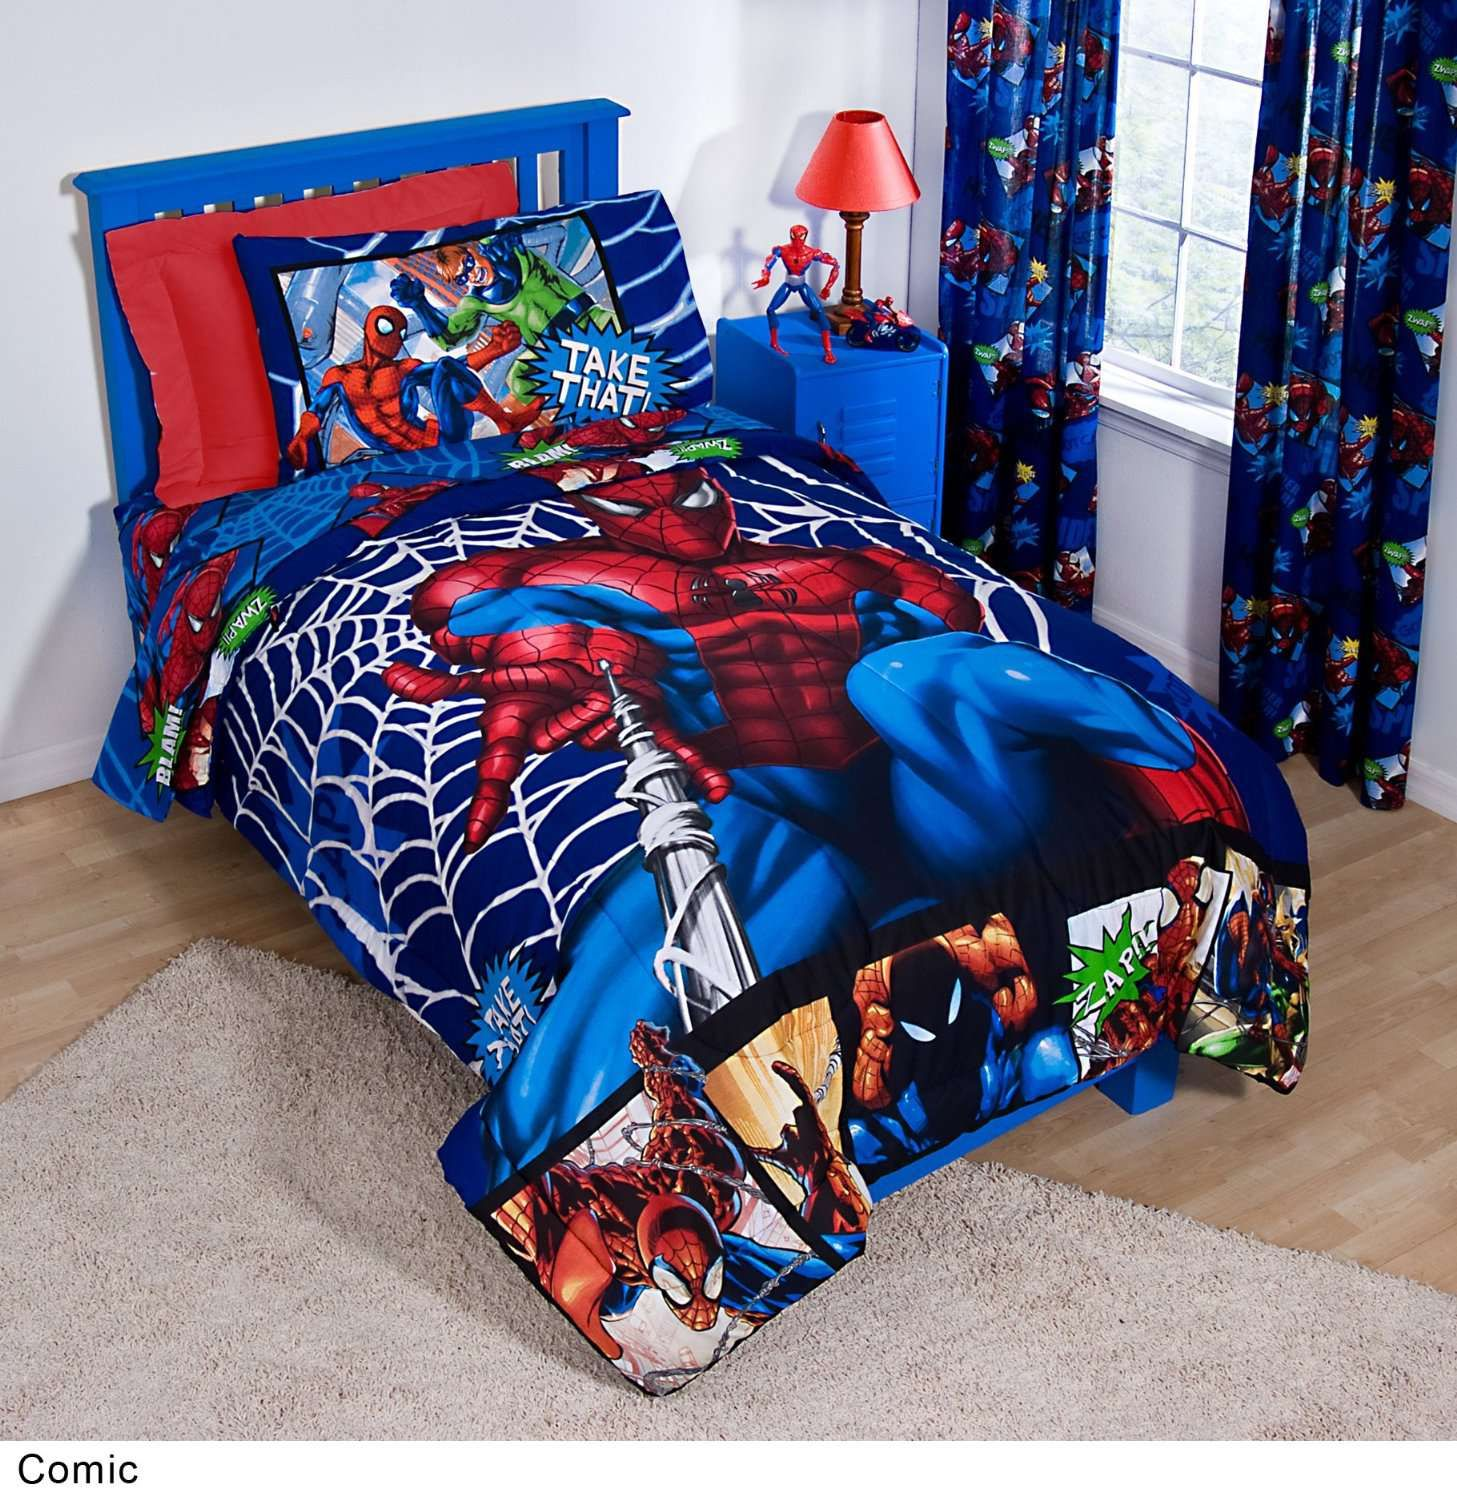 furniture awesome toys spiderman of chairs walmart bedroom us set r